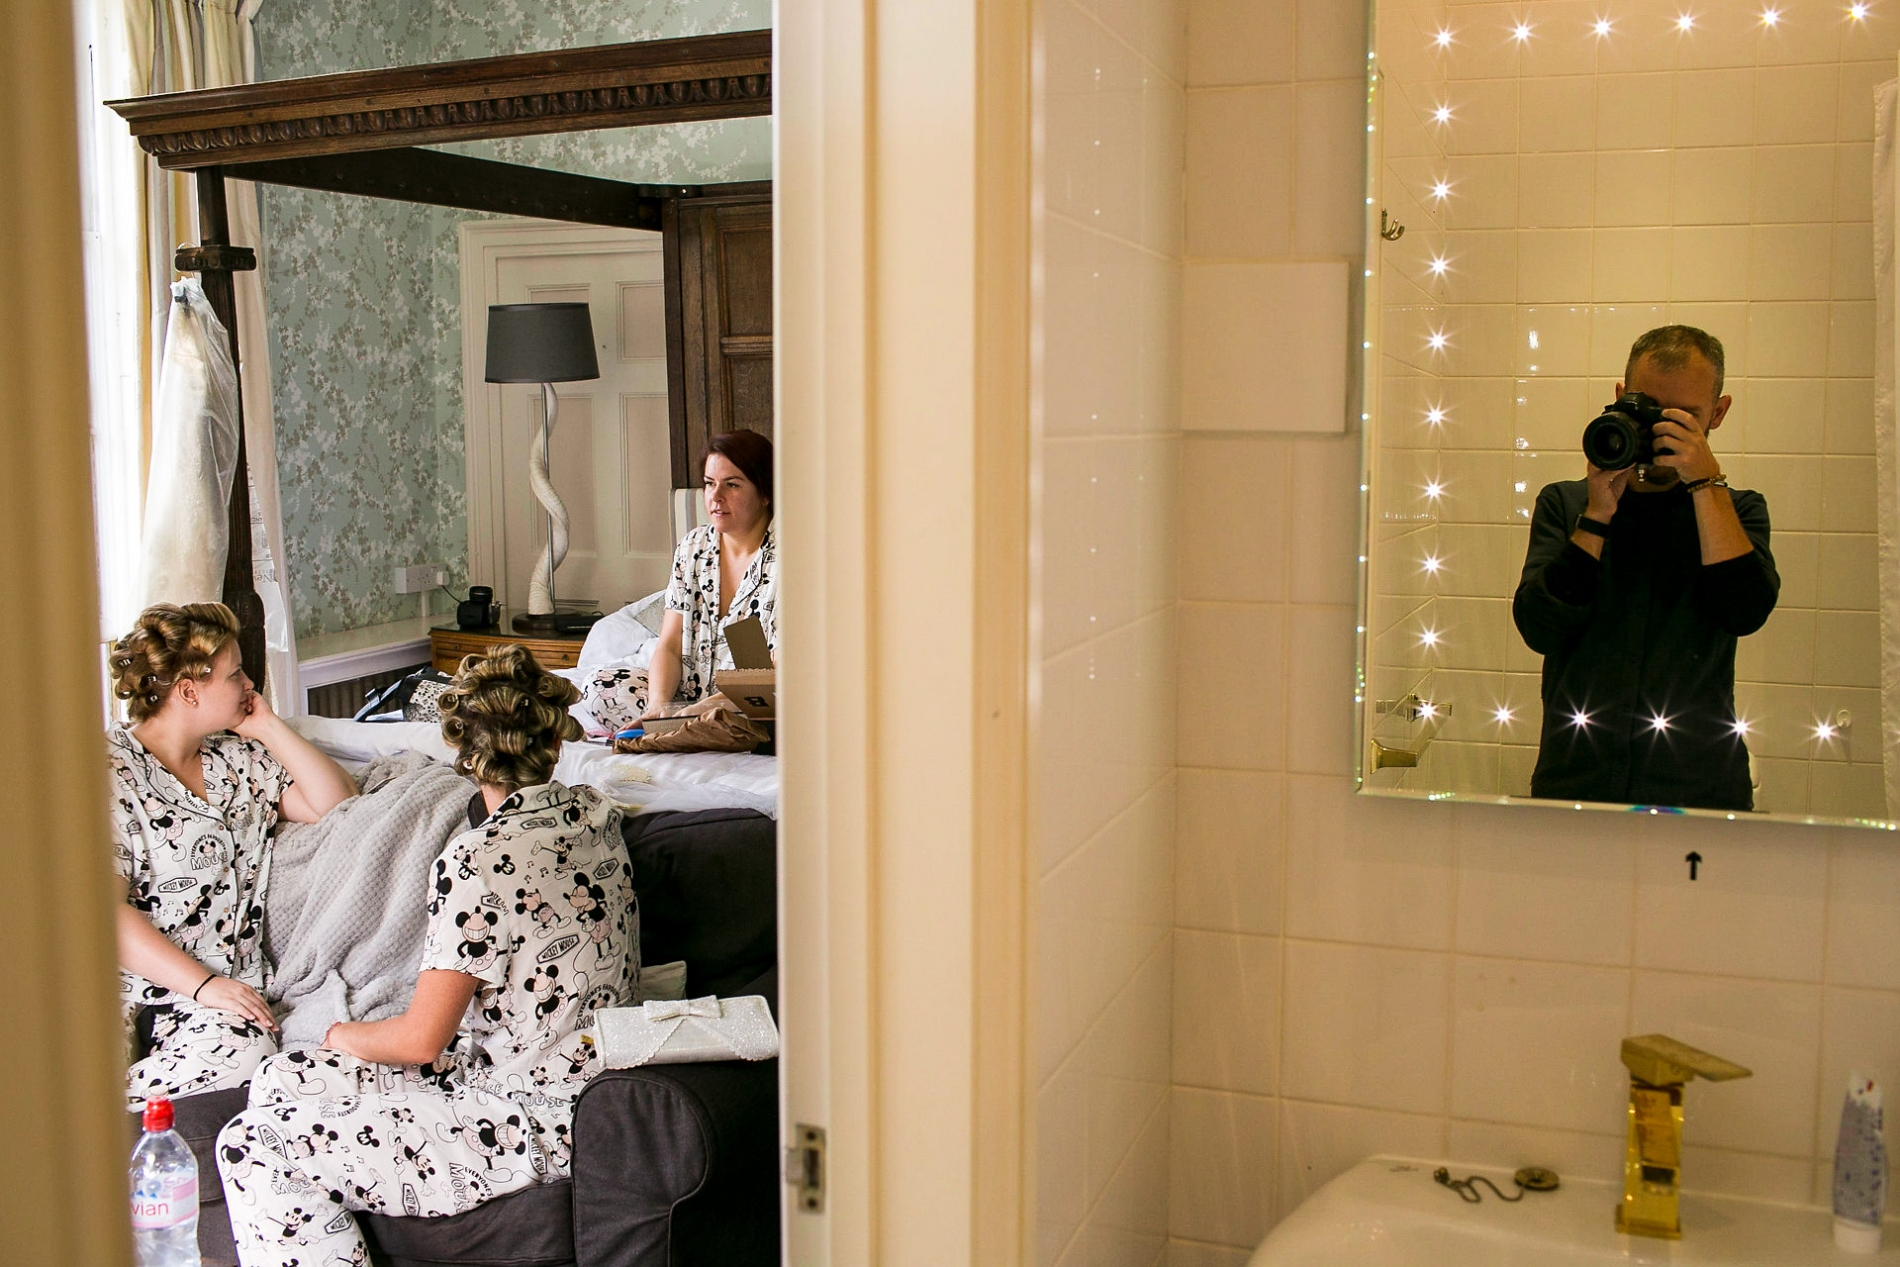 Aaron Storry photography during Bridal Prep at a UK wedding.